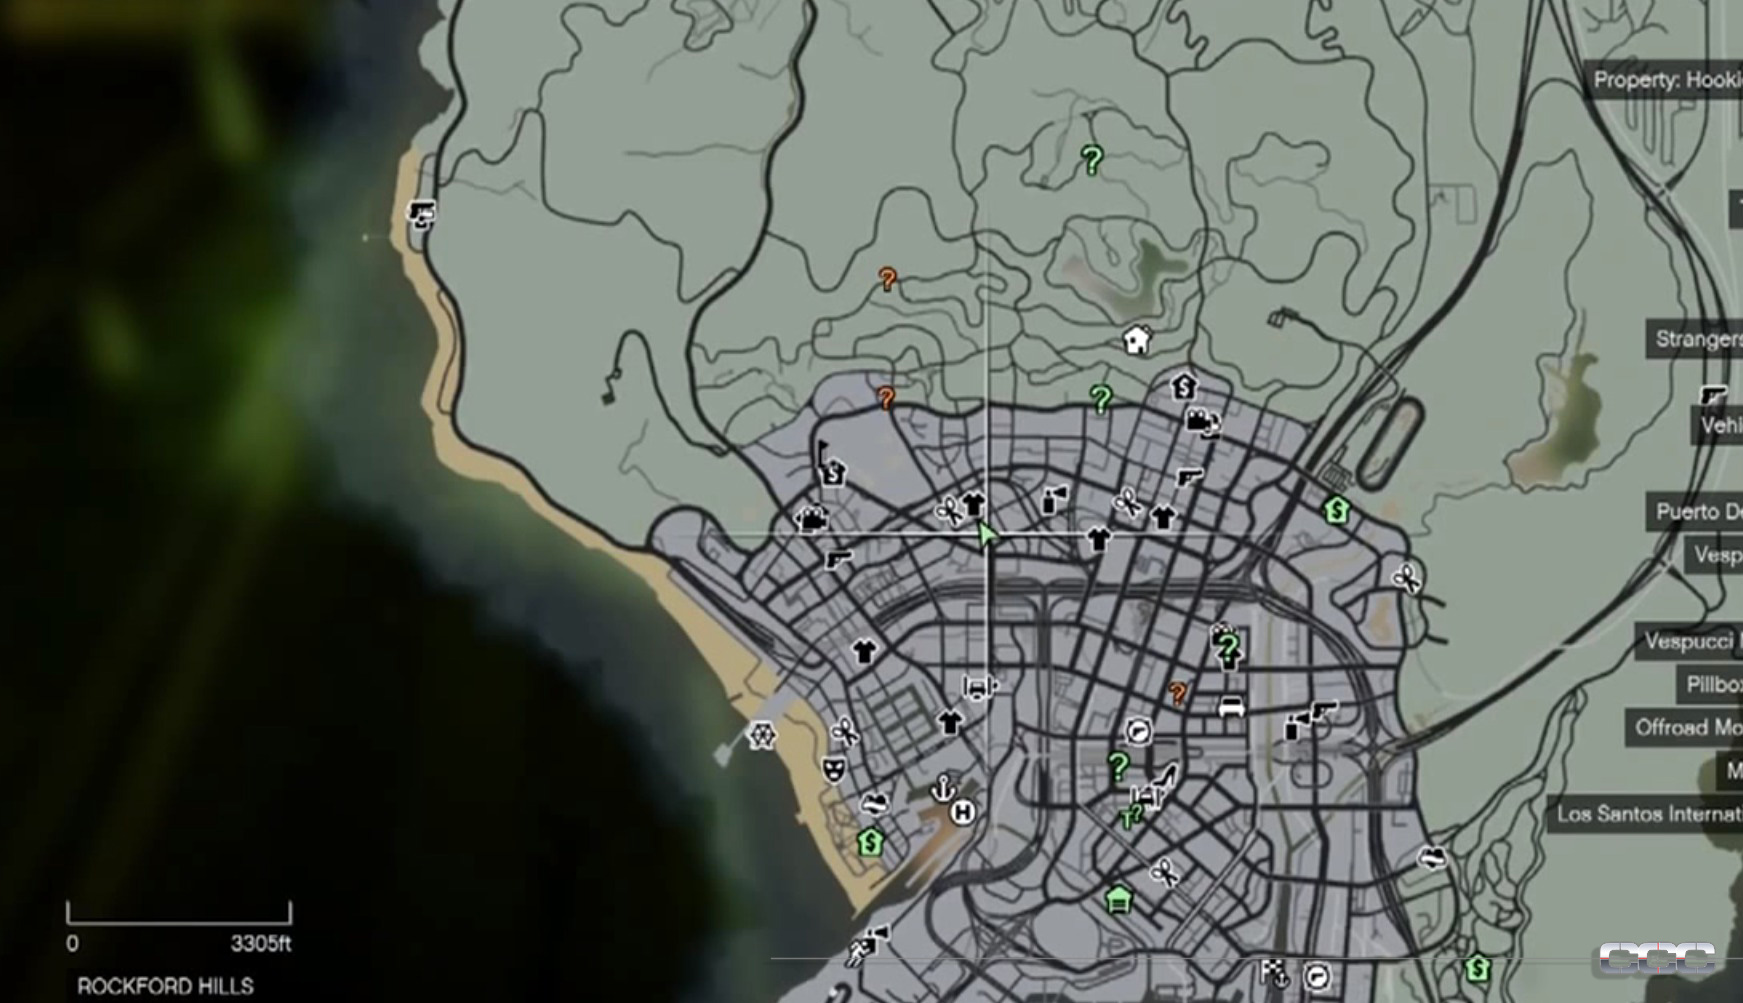 Gta 5 Ps3 Vehicle Spawn Locations besides Watch as well Gta V Next Gen Screenshots as well Grandtheftauto5cheatscodes further Gta 5 Buzzard Location. on gta 5 cheetah spawn